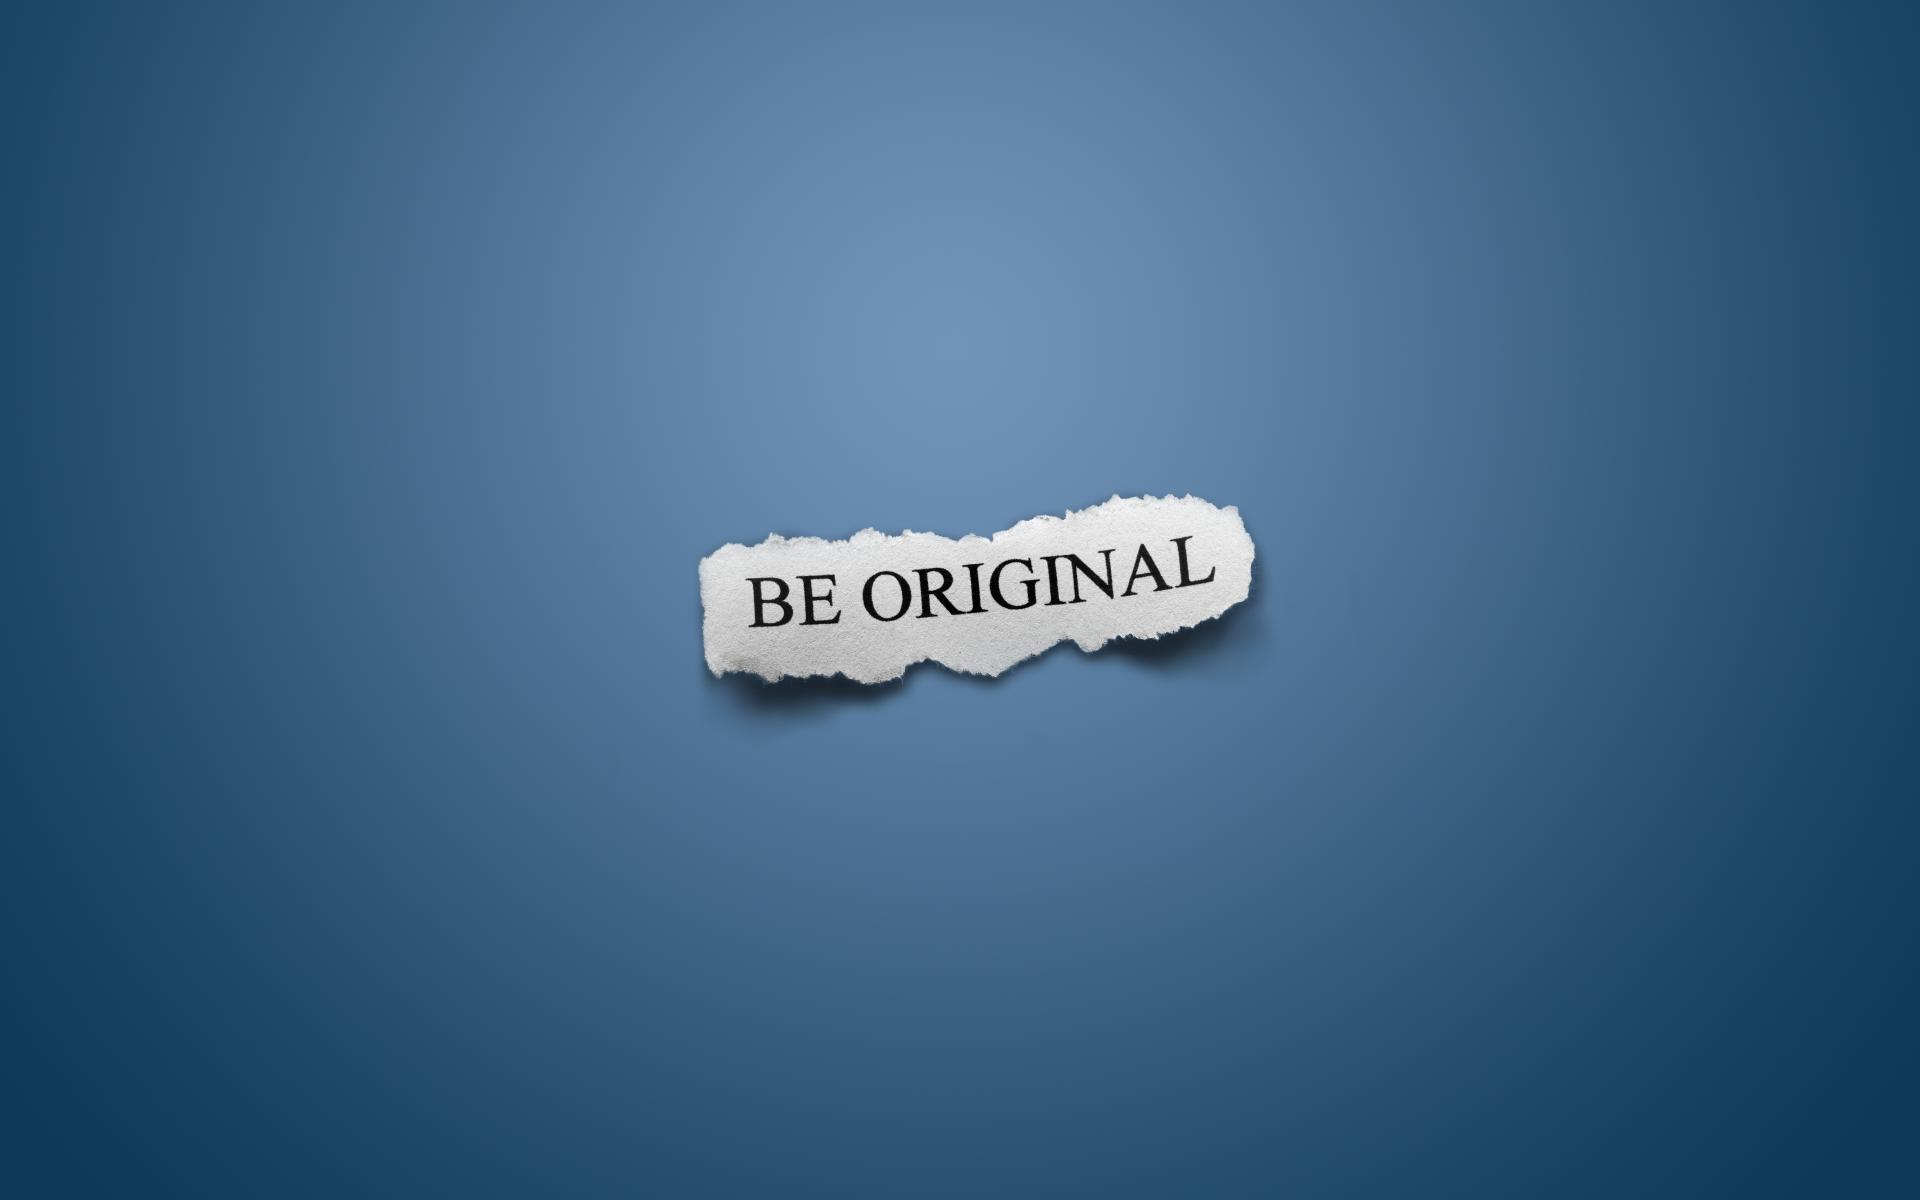 Motivational Wallpaper – Be Original